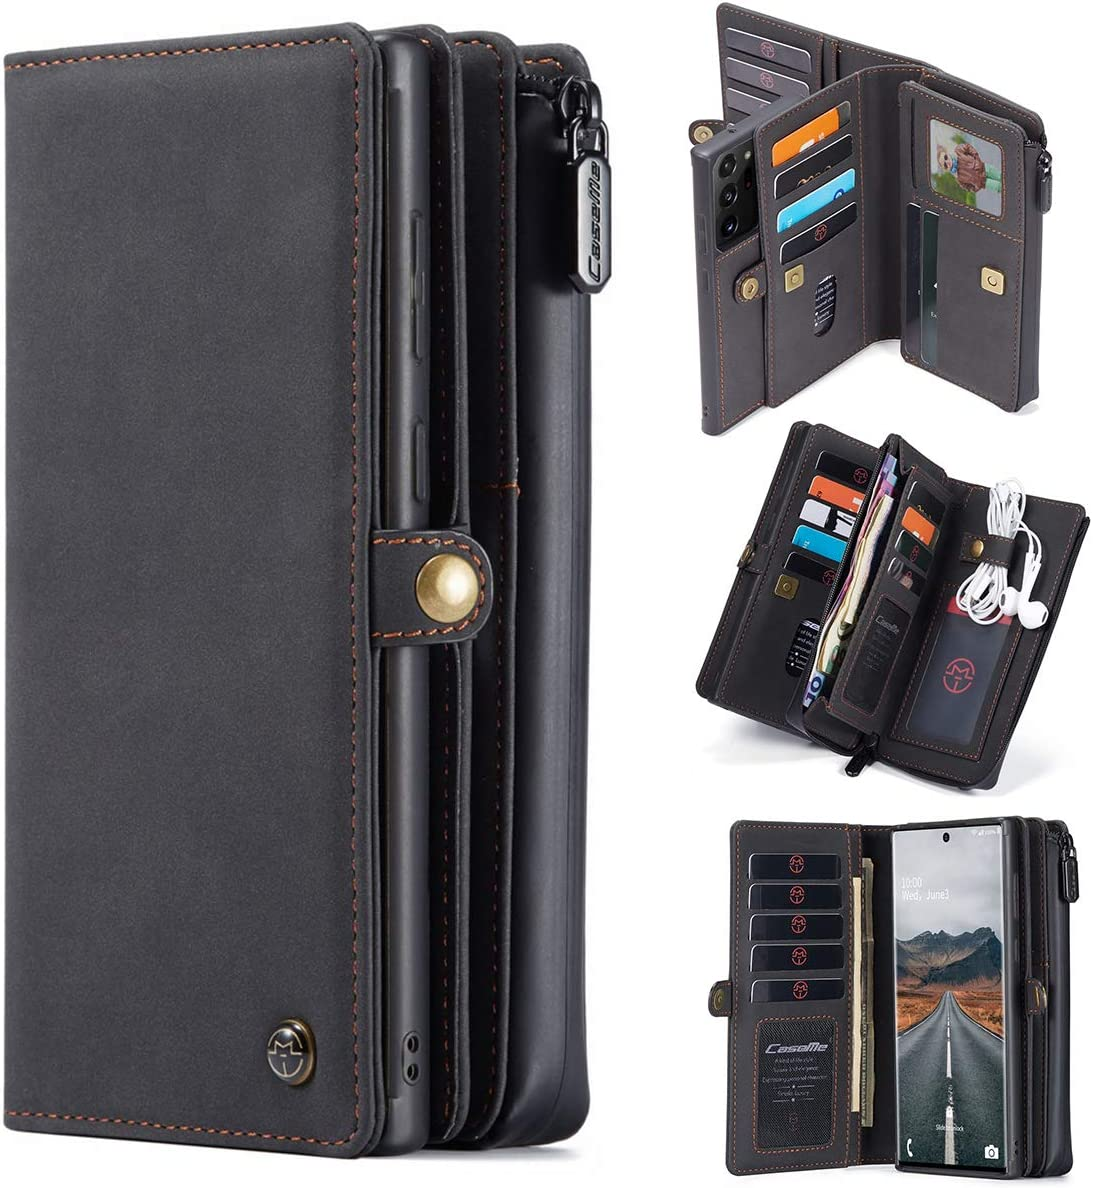 Genuine Leather Wallet Case Cell Phone Sleeve Holster, 17 Cards Holder RFID Protection+Detachable Magnetic Cover+Zipper Phone Pouch for Samsung Galaxy Note 20 Ultra 6.9-inch 2020 (Black, Note20)